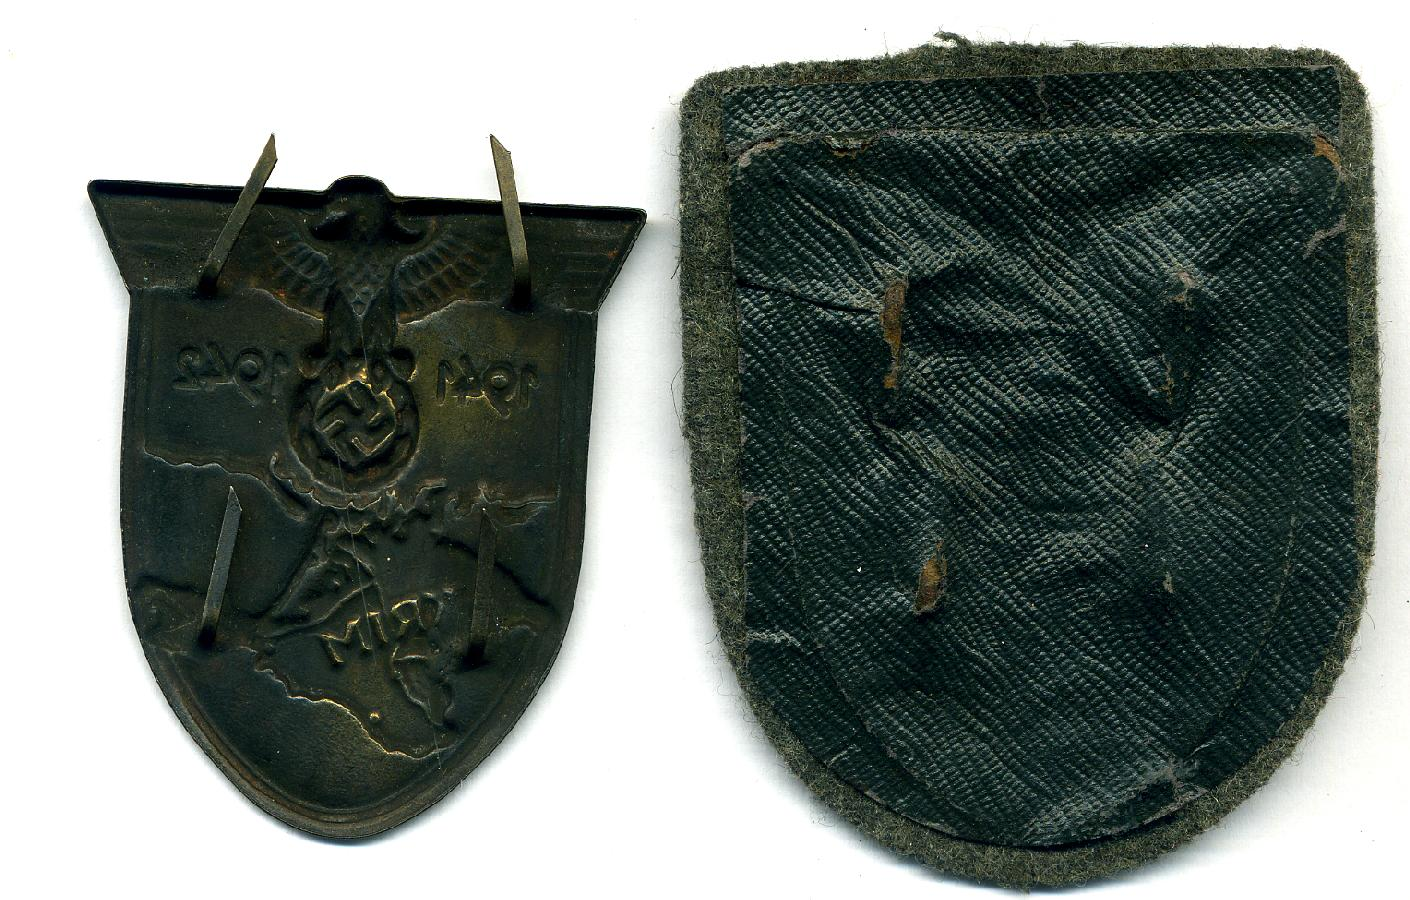 KRIM ARMSHIELDS REVERSE WITH AND WITHOUT BACKING CLOTH.